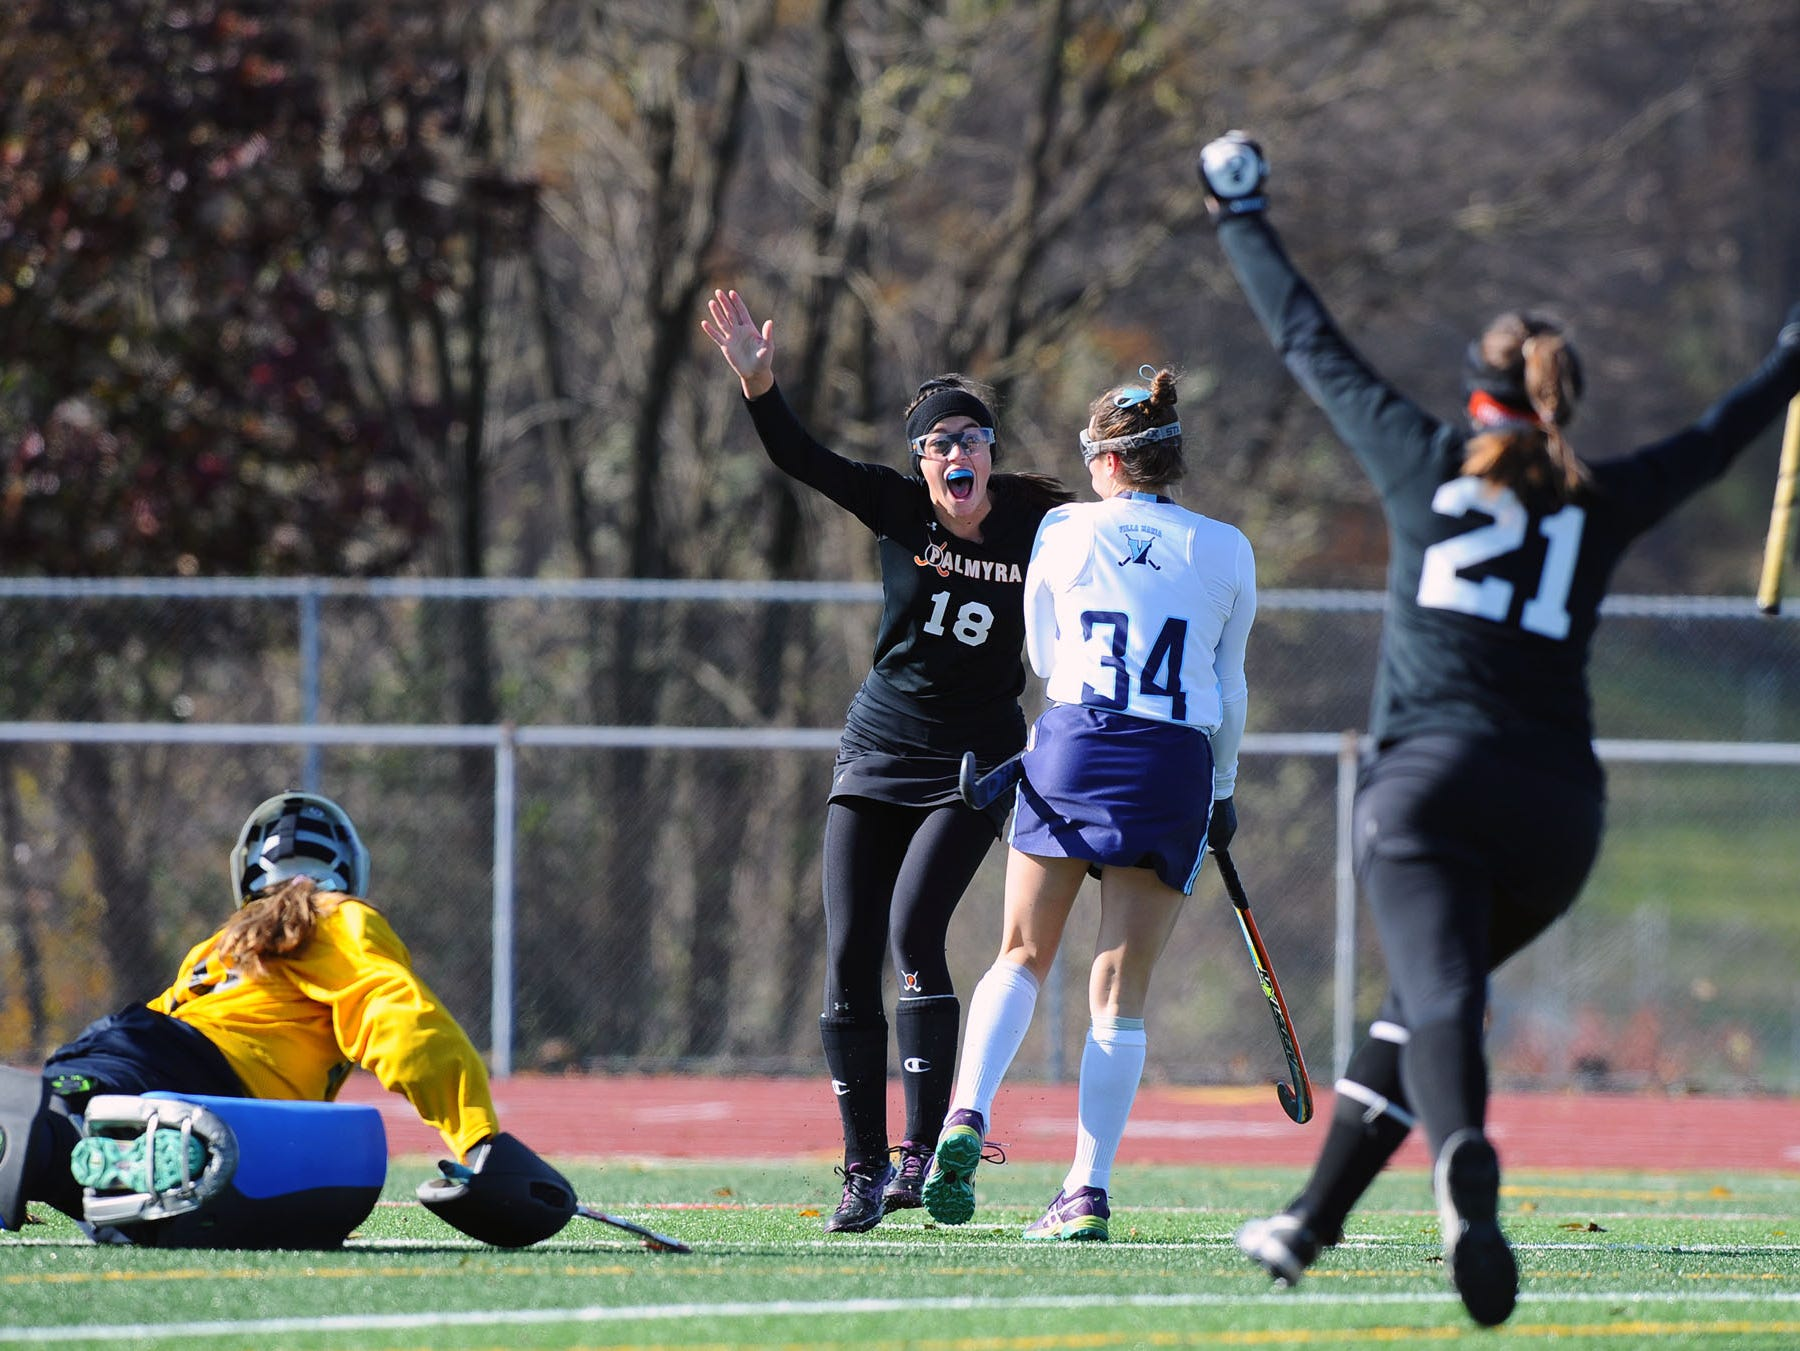 Mia Julian and her teammates celebrate after she ties game 1-1 in the first half.